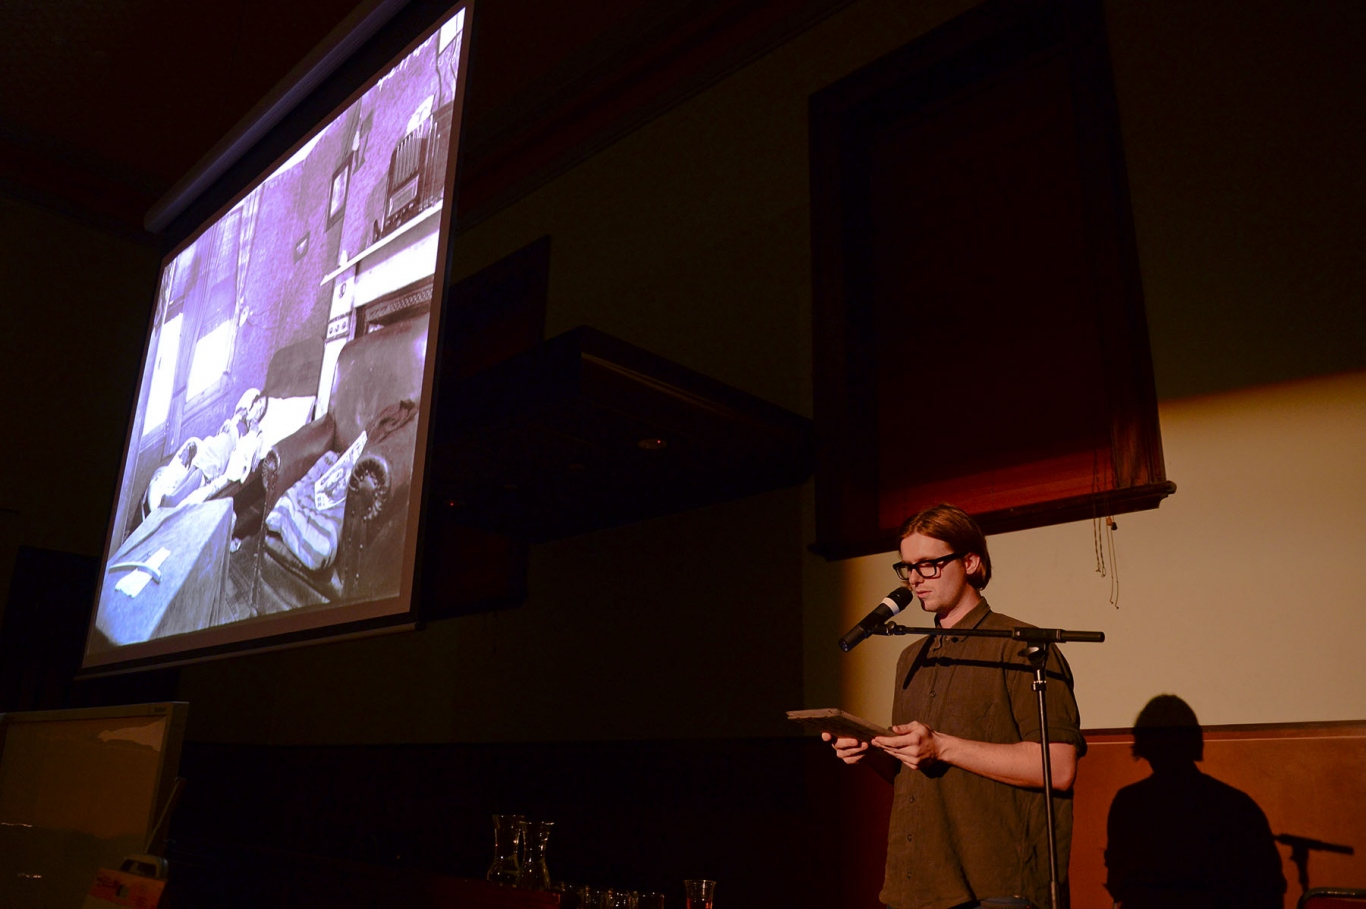 Image of a man at a microphone with a screen projecting an image of a deceased woman lying on a bed